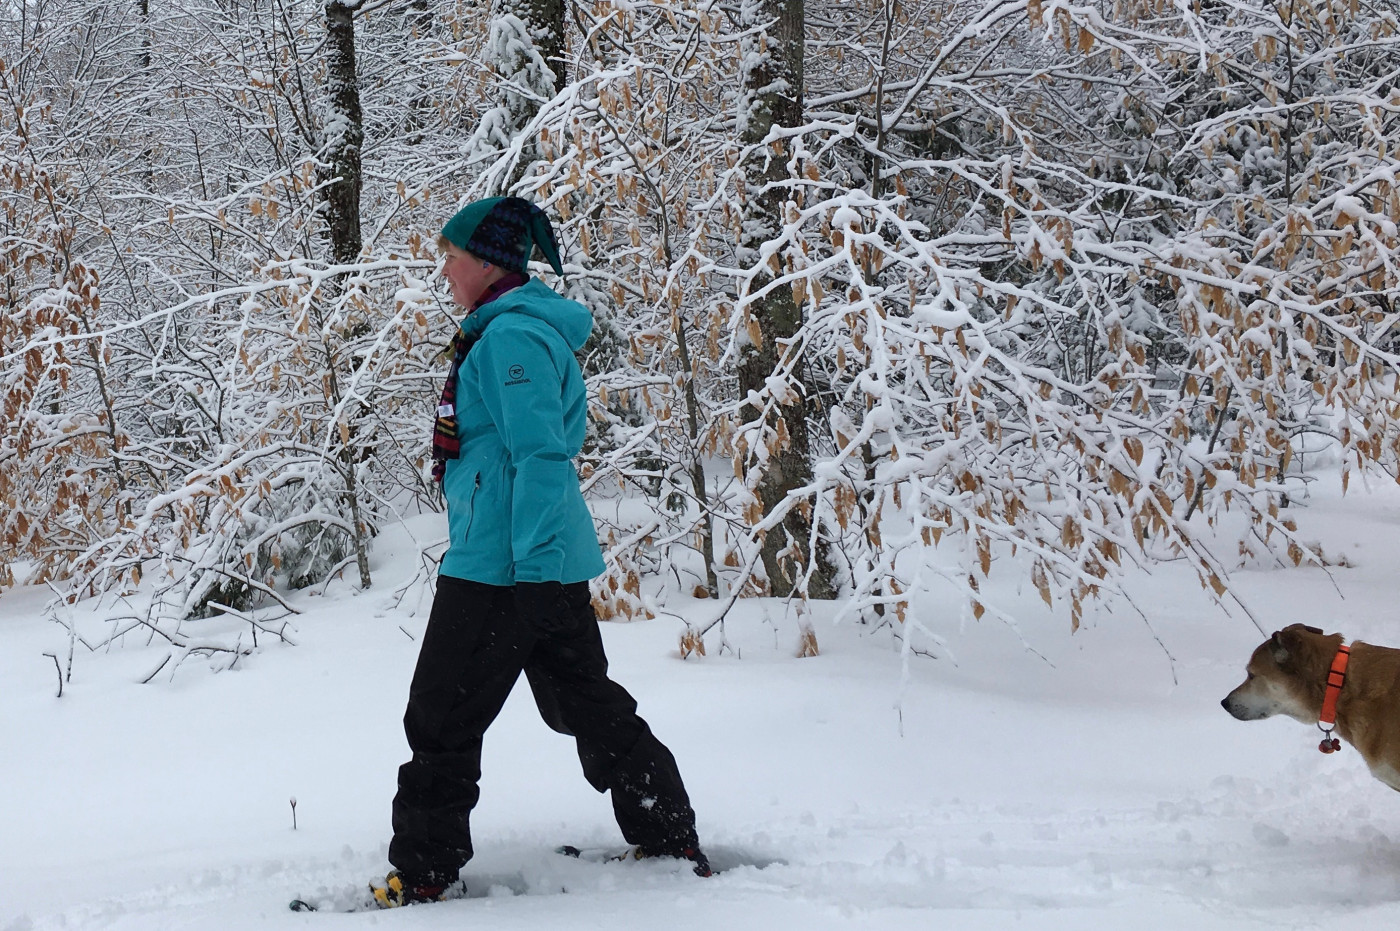 Dog follows snowshoeing woman on trail